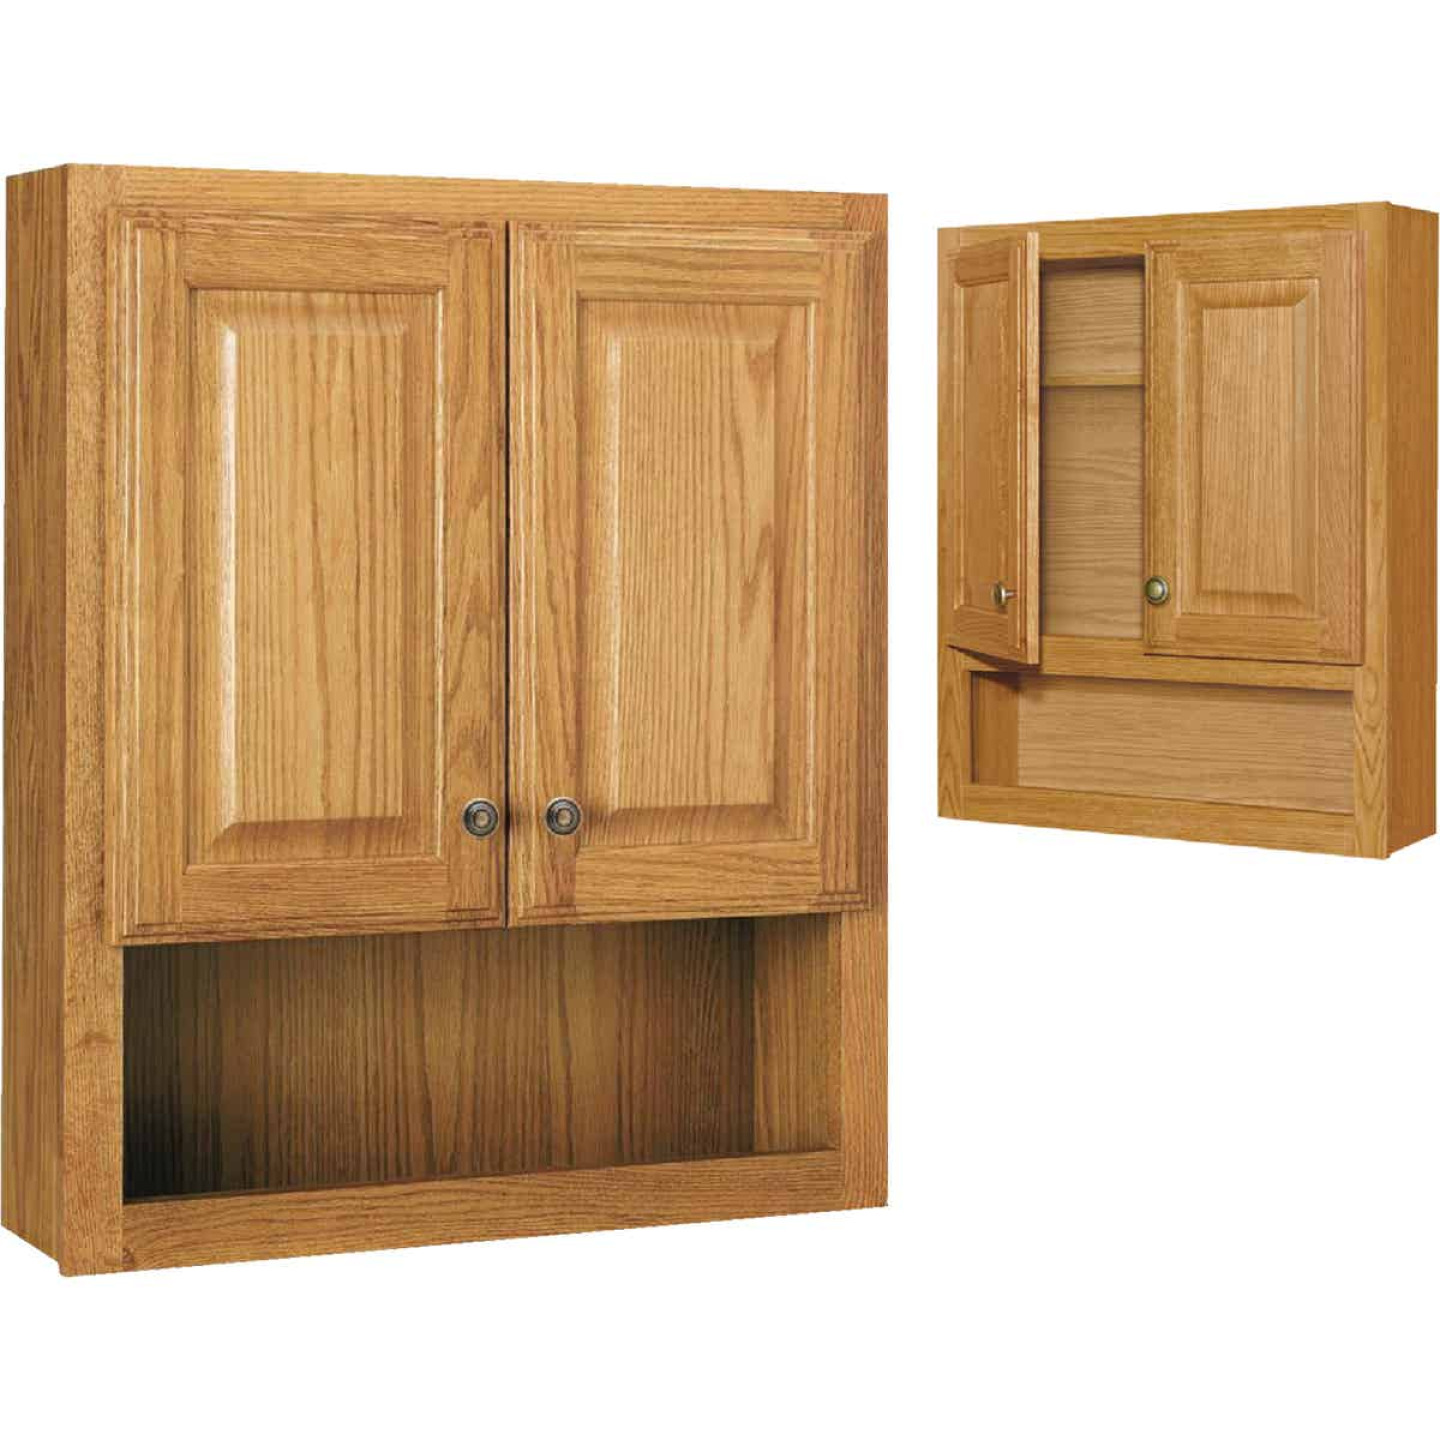 Continental Cabinets Modular Honey Oak Finish 23-1/4 In. W. x 28 In. H. x 7-1/4 In. D. Wood Wall Bath Cabinet Image 1